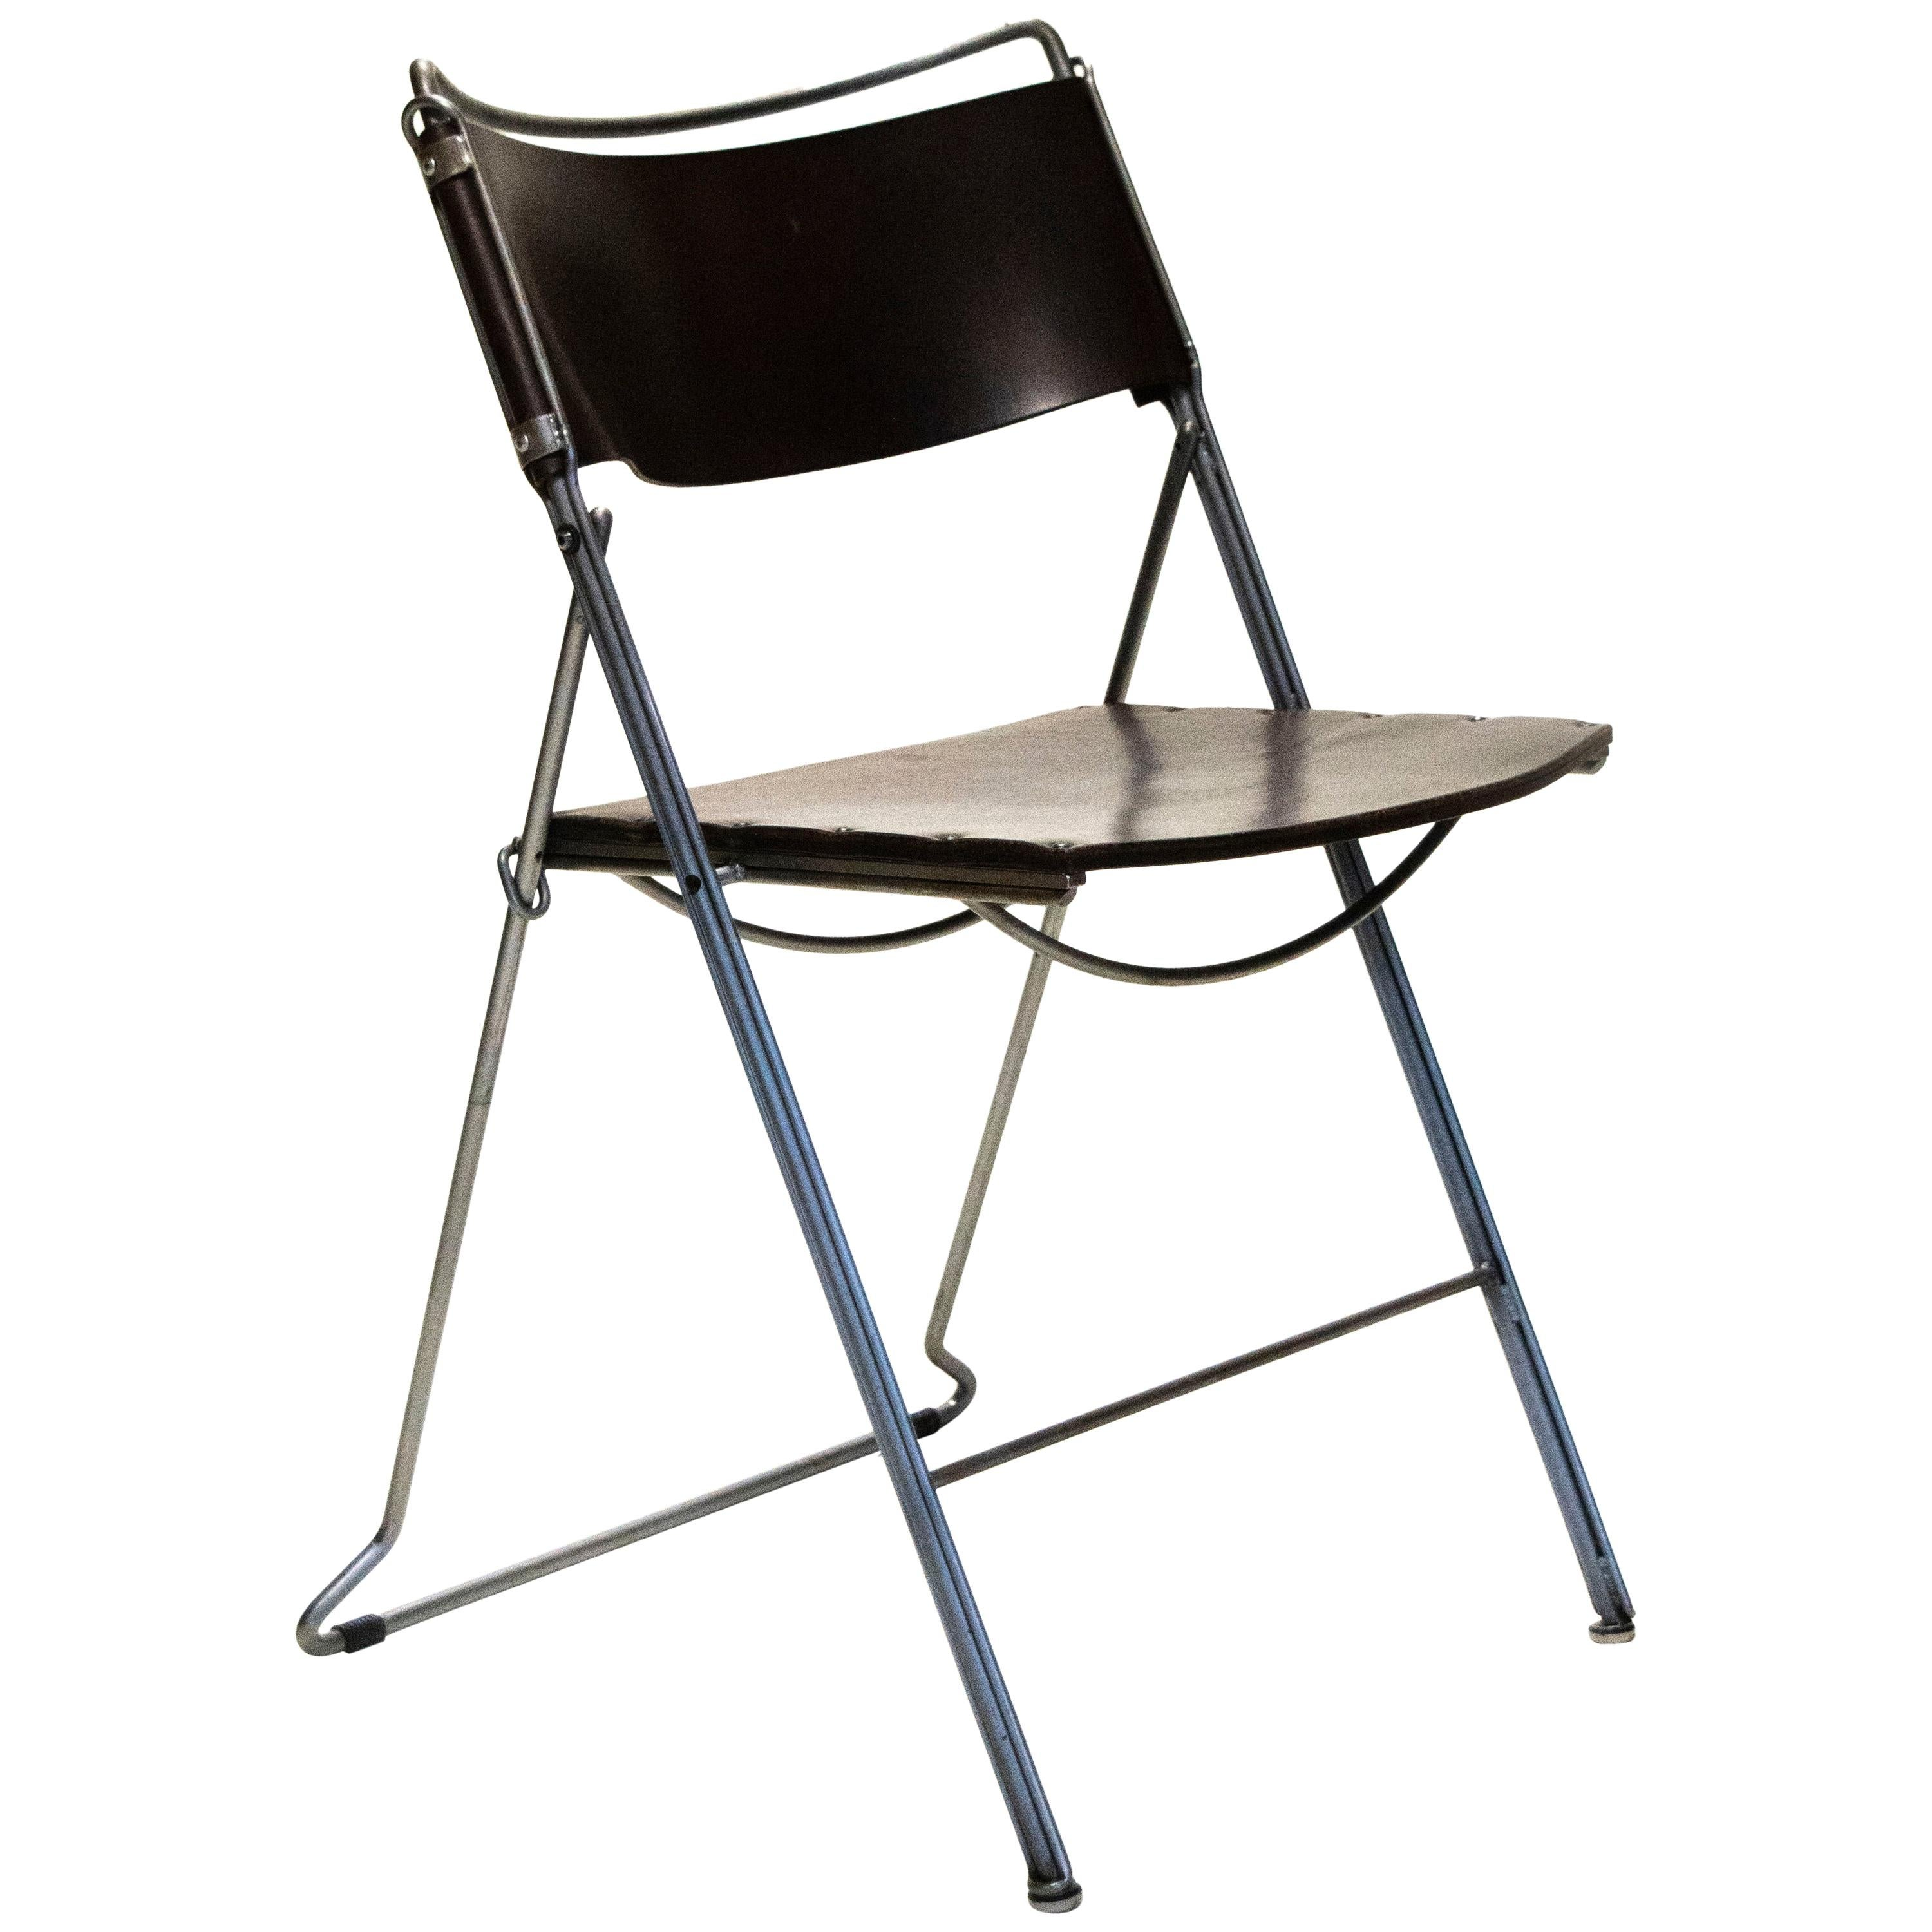 Swell Campaign Folding Chair Cjindustries Chair Design For Home Cjindustriesco